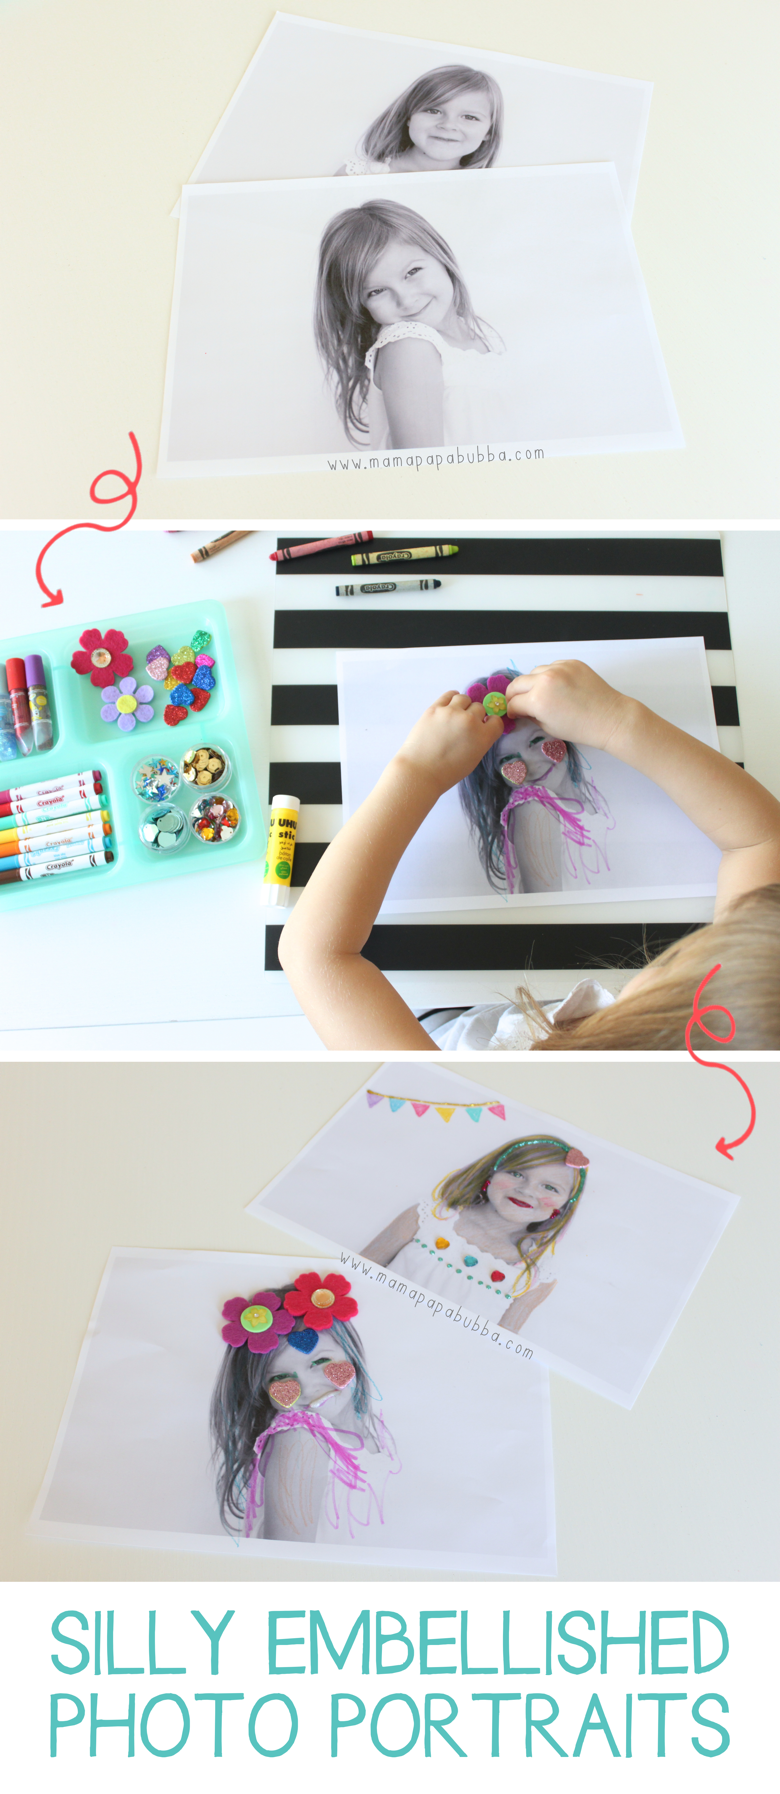 Silly Embellished Photo Portraits | Mama Papa Bubba